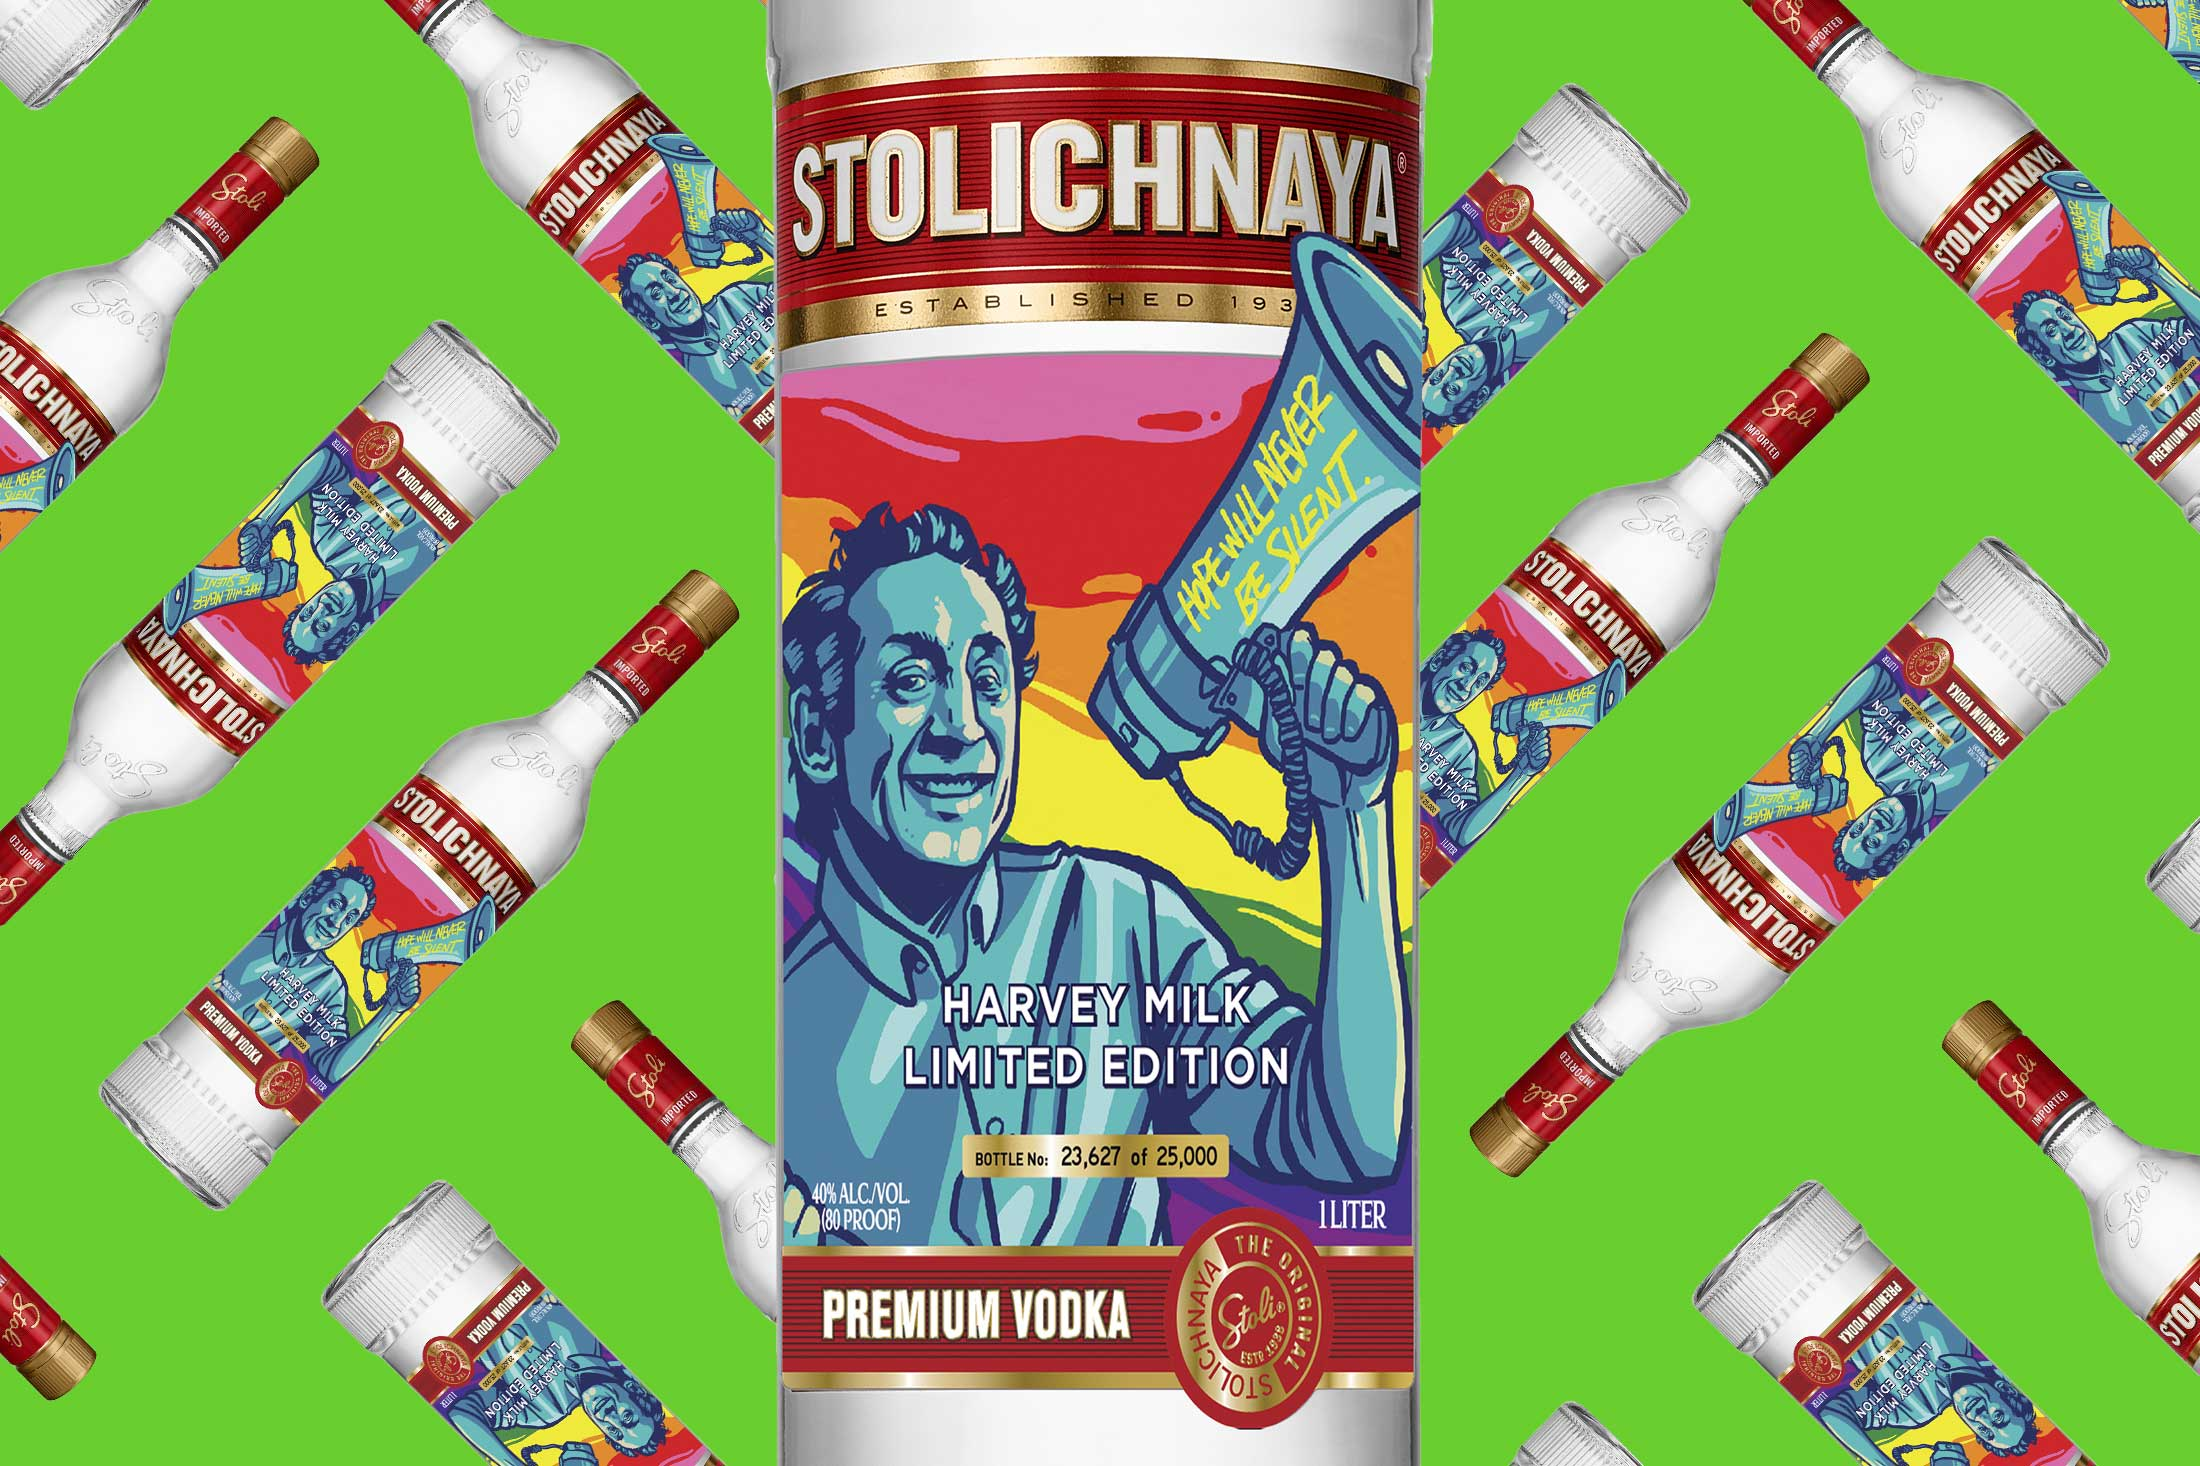 Stoli bottle with Harvey Milk branding.